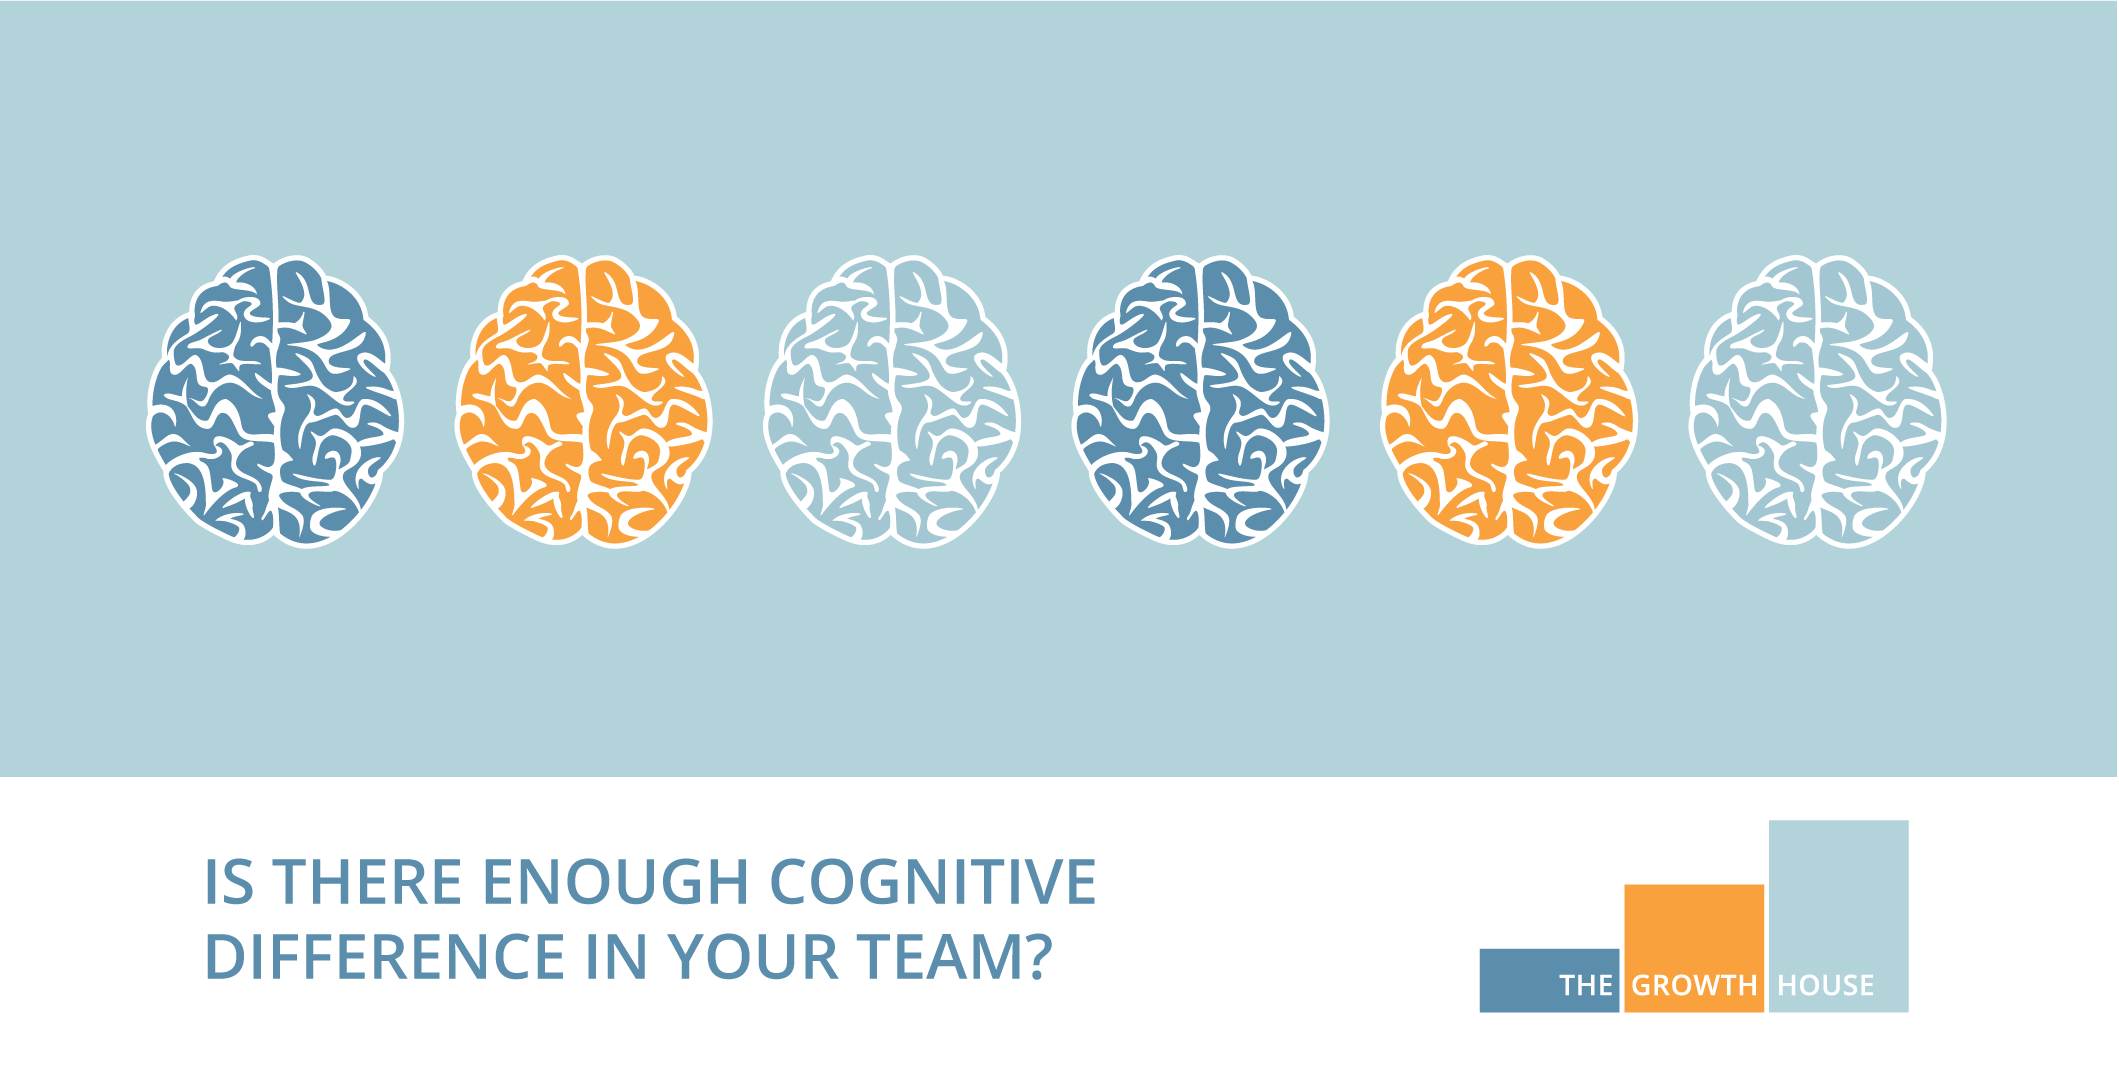 Is there enough cognitive difference in your team